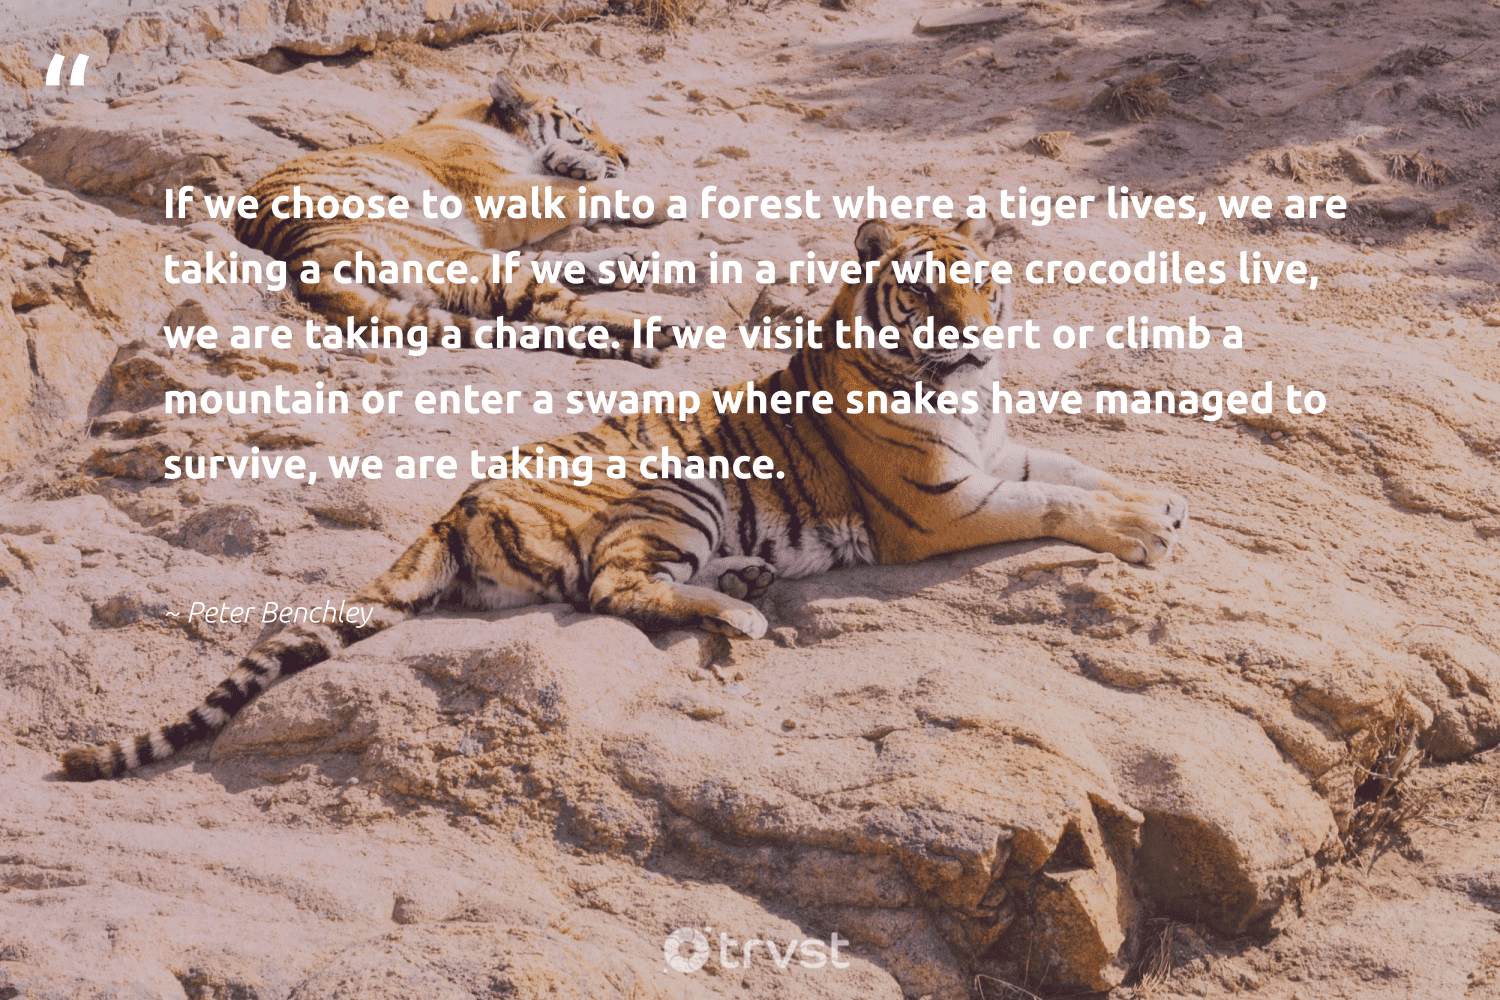 """""""If we choose to walk into a forest where a tiger lives, we are taking a chance. If we swim in a river where crocodiles live, we are taking a chance. If we visit the desert or climb a mountain or enter a swamp where snakes have managed to survive, we are taking a chance.""""  - Peter Benchley #trvst #quotes #river #mountain #forest #tiger #treeplanting #biodiversity #green #dosomething #trees #ourplanetdaily"""